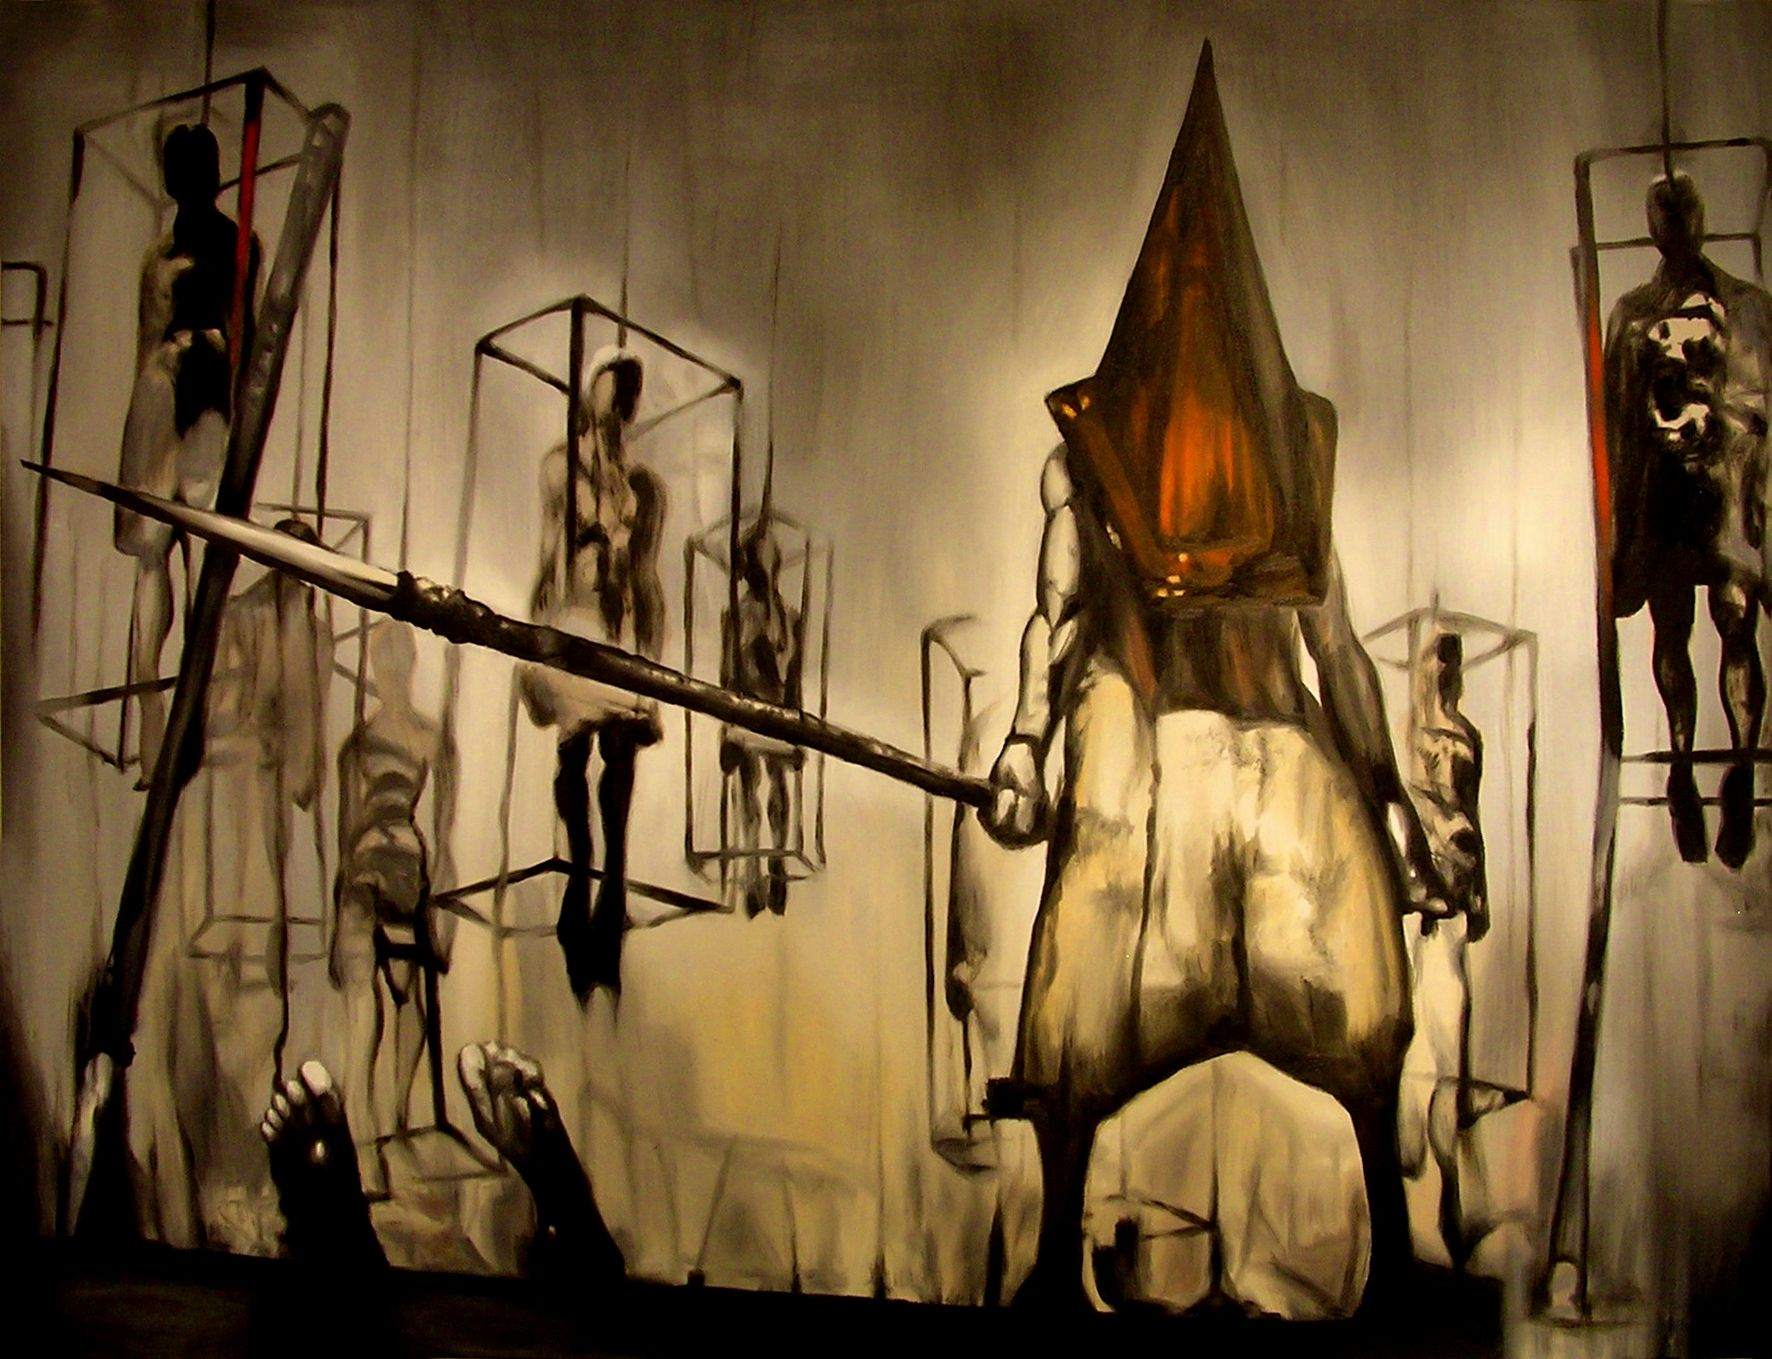 Silent Hill Pyramid Head Wallpaper Posted By Christopher Mercado